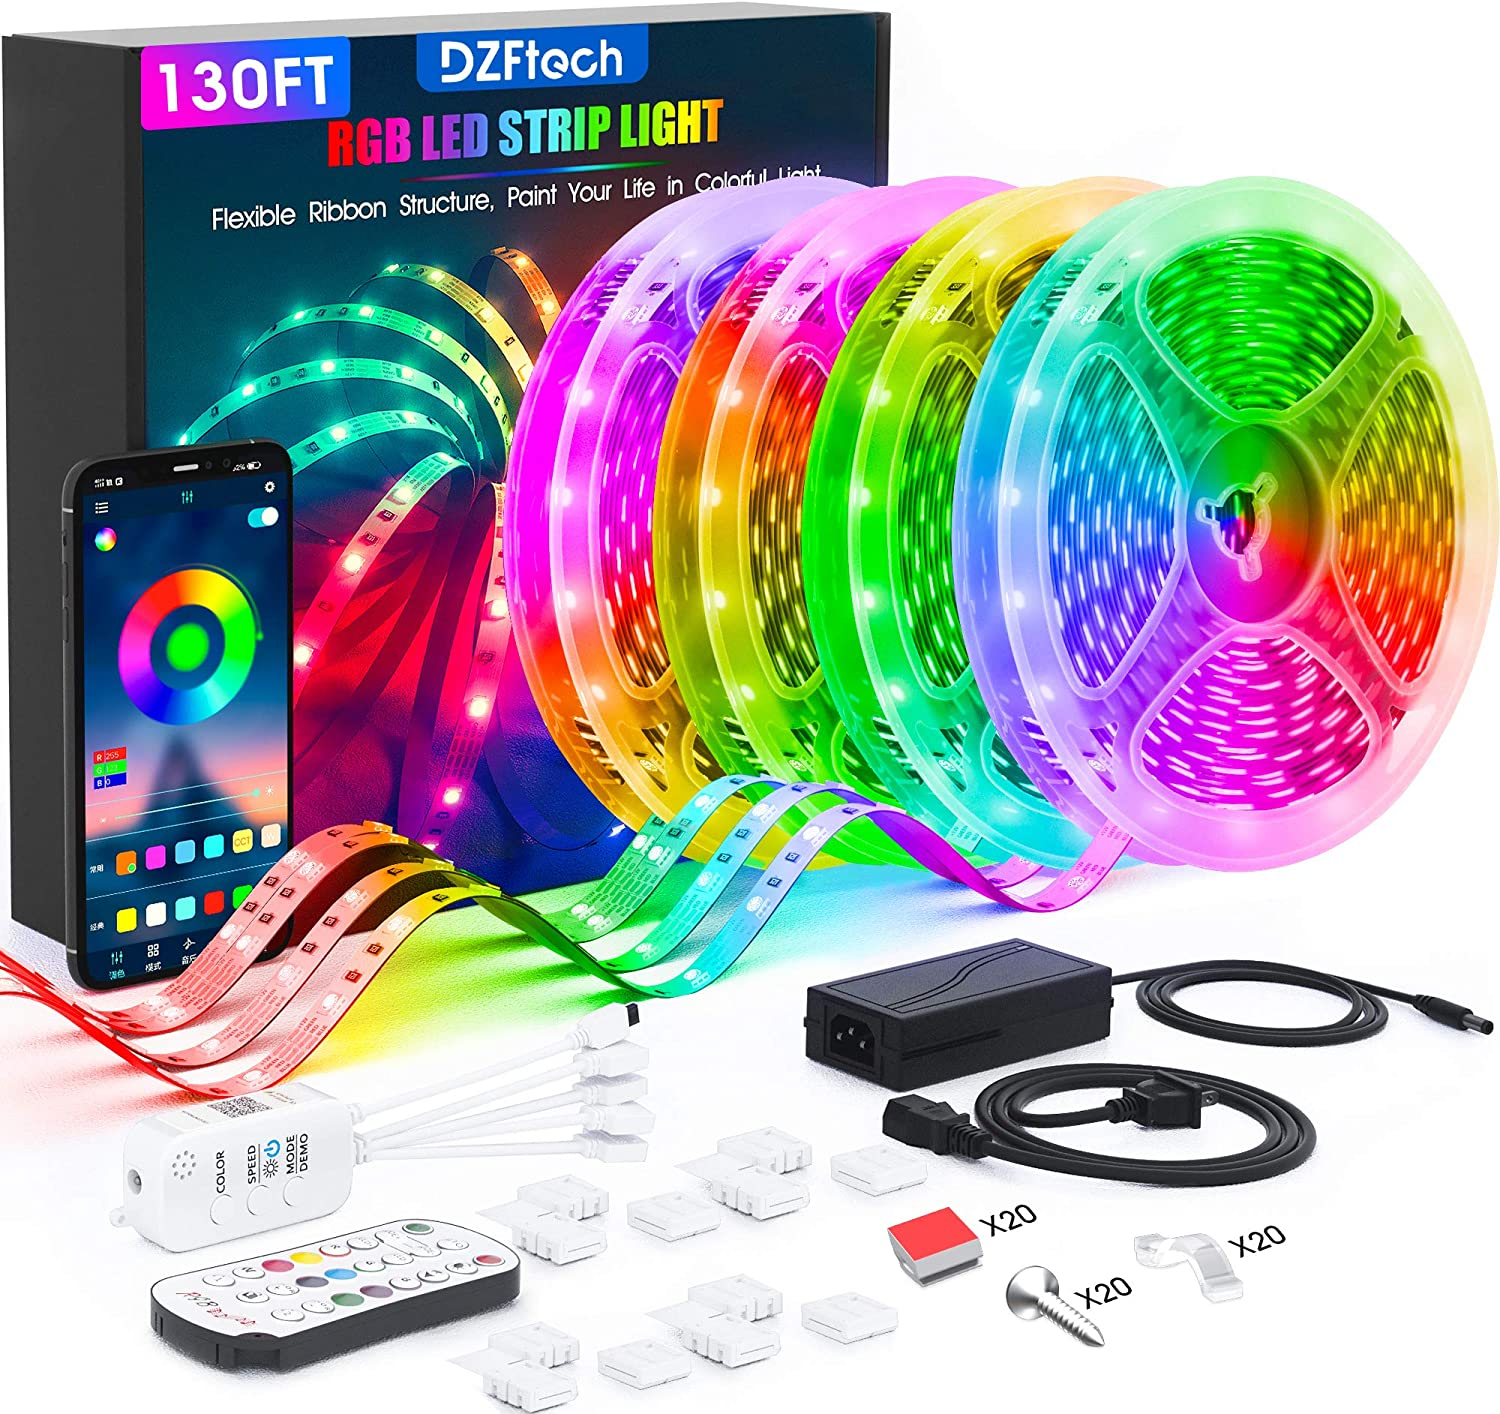 Led Strip Lights 130 Feet,DZFtech Color Changing Led Lights Strip App Control and Synchronization with Music, 1200 Lights 5050 Led Type, Led Lights for Bedroom, Room and Home Decoration